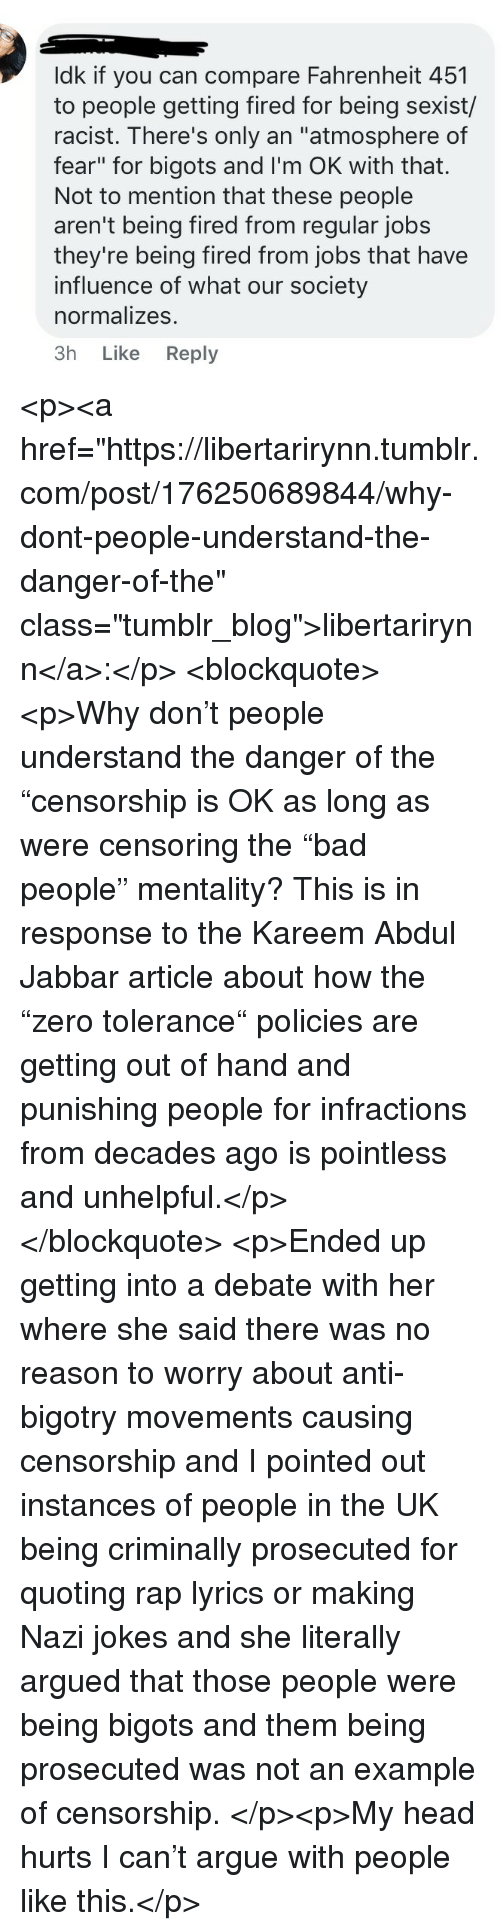 """Arguing, Head, and Rap: ldk if you can compare Fahrenheit 451  to people getting fired for being sexist/  racist. There's only an """"atmosphere of  fear"""" for bigots and I'm OK with that.  Not to mention that these people  aren't being fired from regular jobs  they're being fired from jobs that have  influence of what our society  normalizes.  3h Like Reply <p><a href=""""https://libertarirynn.tumblr.com/post/176250689844/why-dont-people-understand-the-danger-of-the"""" class=""""tumblr_blog"""">libertarirynn</a>:</p>  <blockquote><p>Why don't people understand the danger of the """"censorship is OK as long as were censoring the """"bad people"""" mentality? This is in response to the Kareem Abdul Jabbar article about how the """"zero tolerance"""" policies are getting out of hand and punishing people for infractions from decades ago is pointless and unhelpful.</p></blockquote>  <p>Ended up getting into a debate with her where she said there was no reason to worry about anti-bigotry movements causing censorship and I pointed out instances of people in the UK being criminally prosecuted for quoting rap lyrics or making Nazi jokes and she literally argued that those people were being bigots and them being prosecuted was not an example of censorship. </p><p>My head hurts I can't argue with people like this.</p>"""